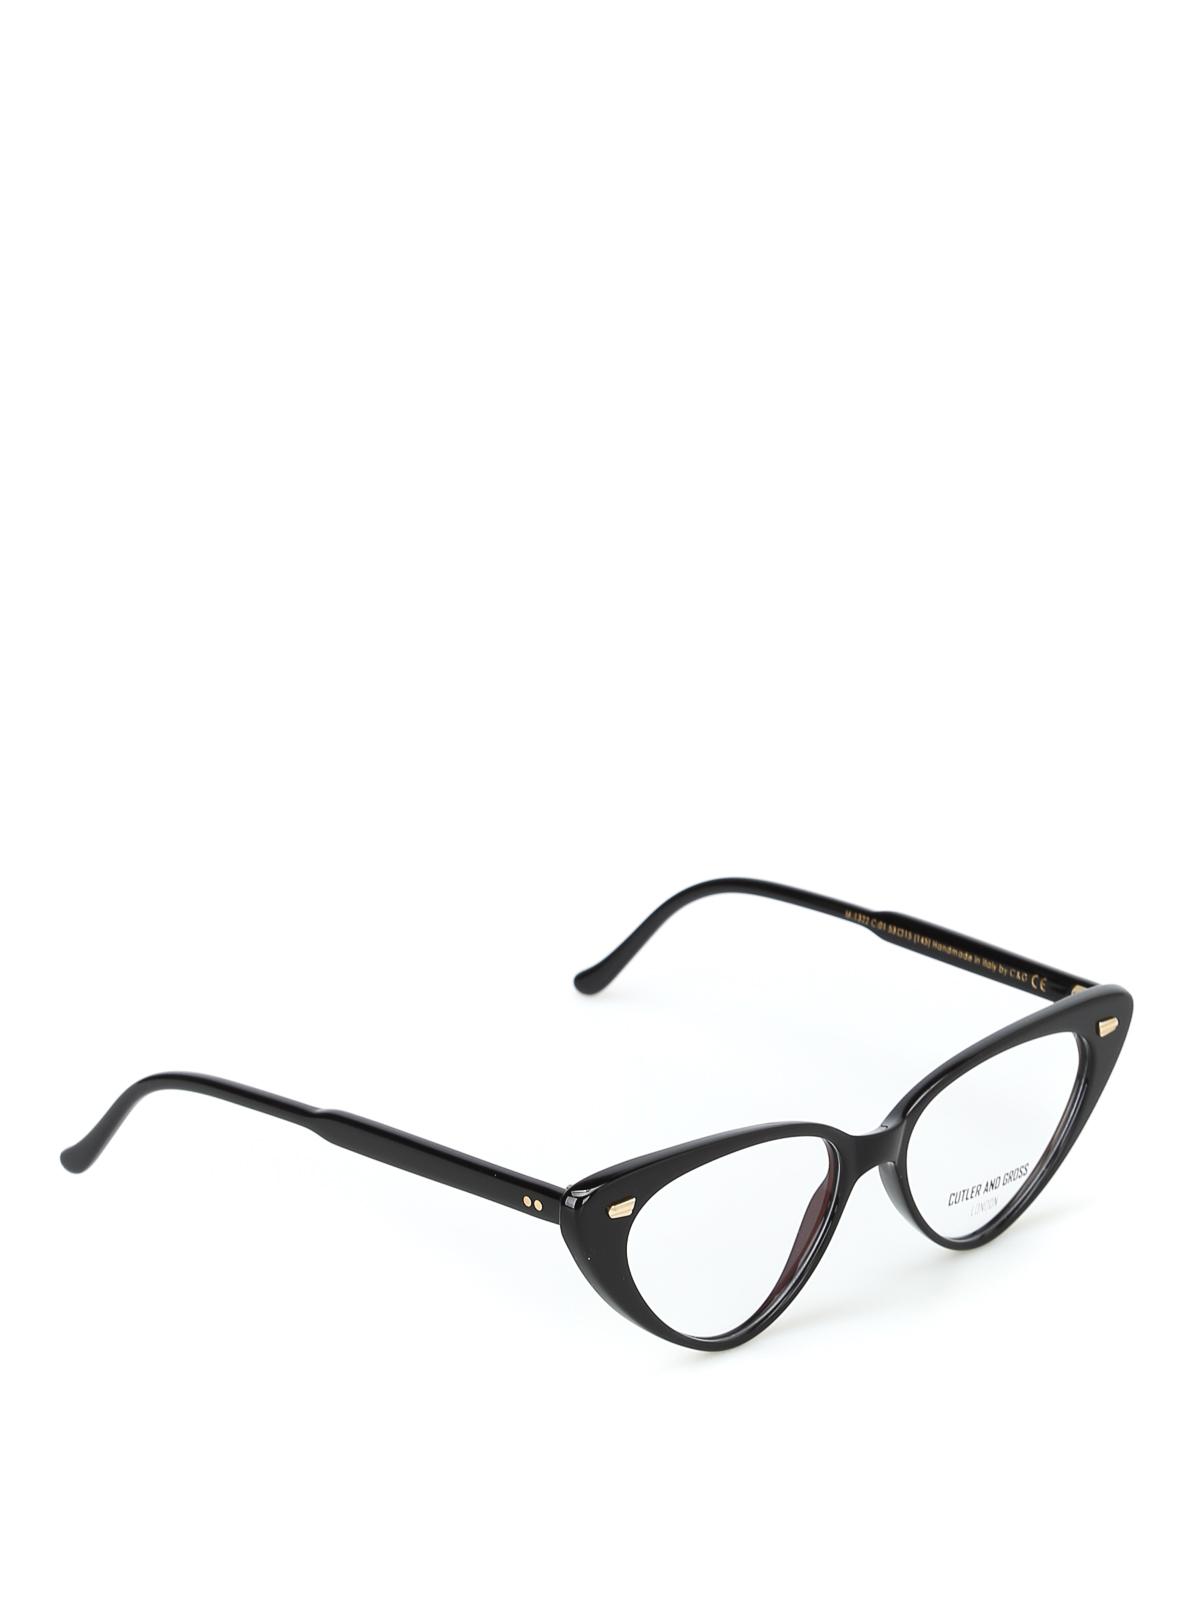 8a91c4d5ce5 CUTLER AND GROSS  Glasses - Super trendy black acetate cat-eye glasses